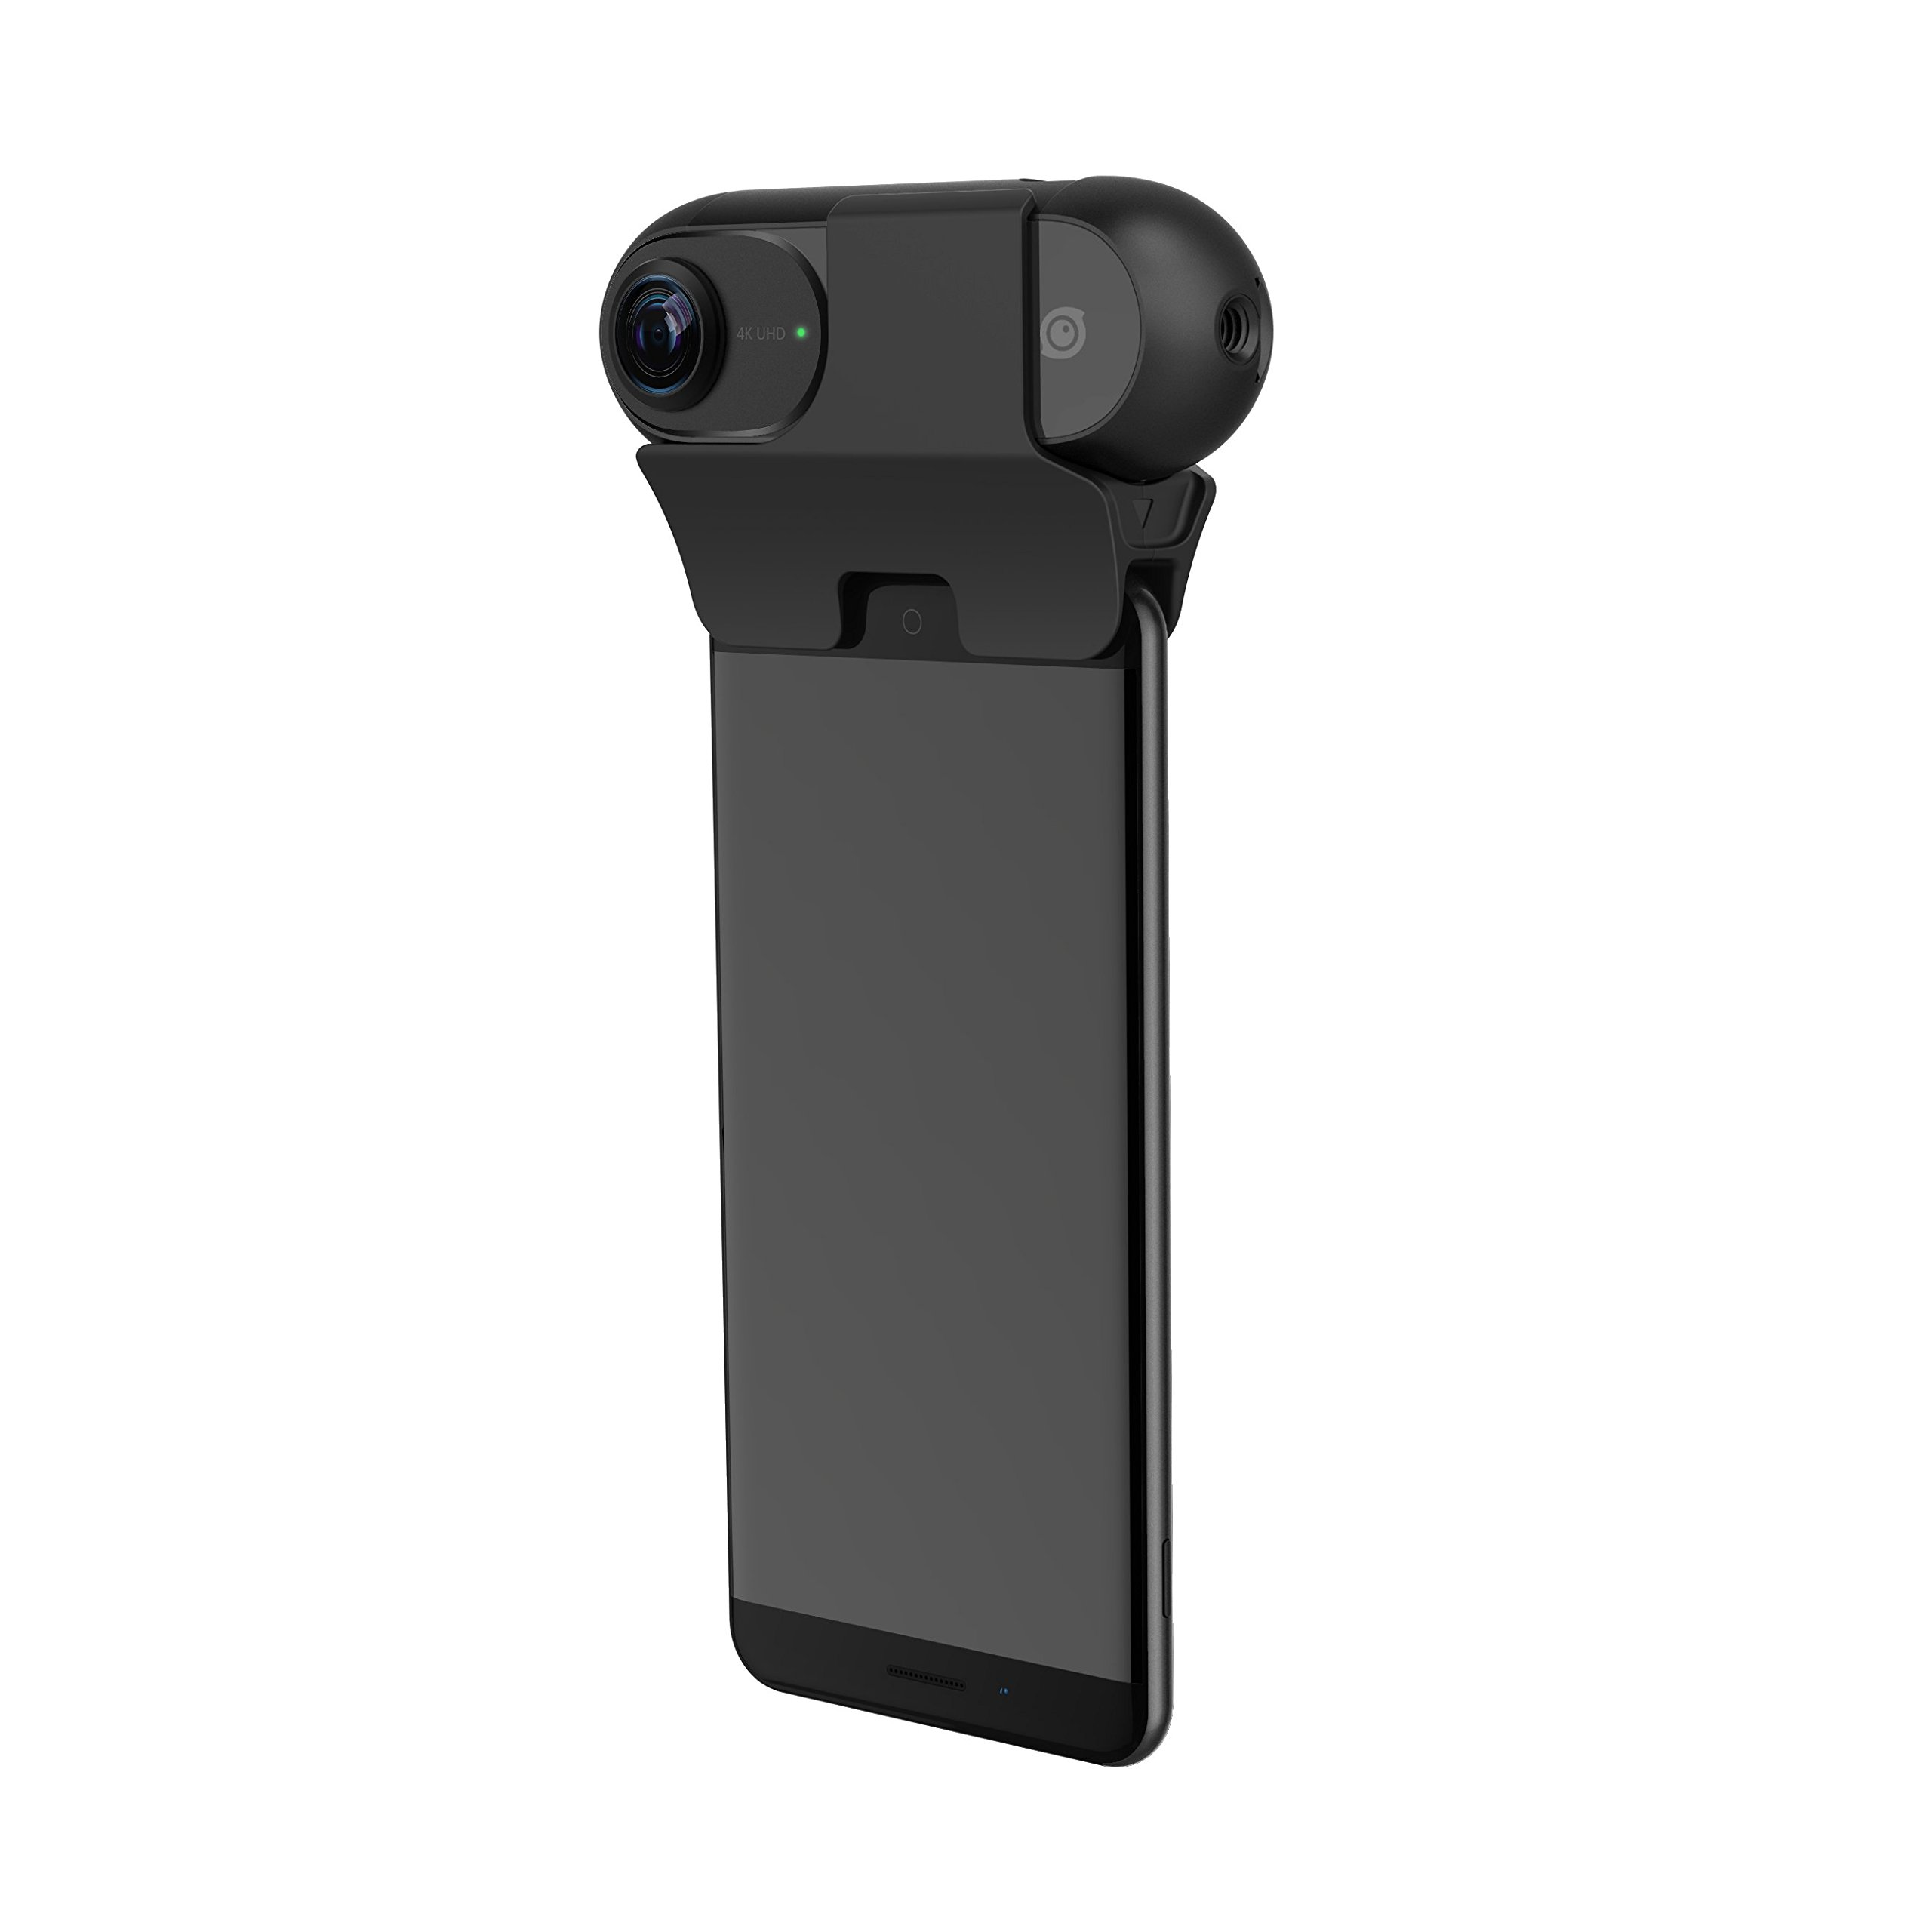 Insta360 Android Adapter (Type C) for Insta360 ONE - 360 Degree 4K VR Action Camera for Smartphone by insta360 (Image #5)